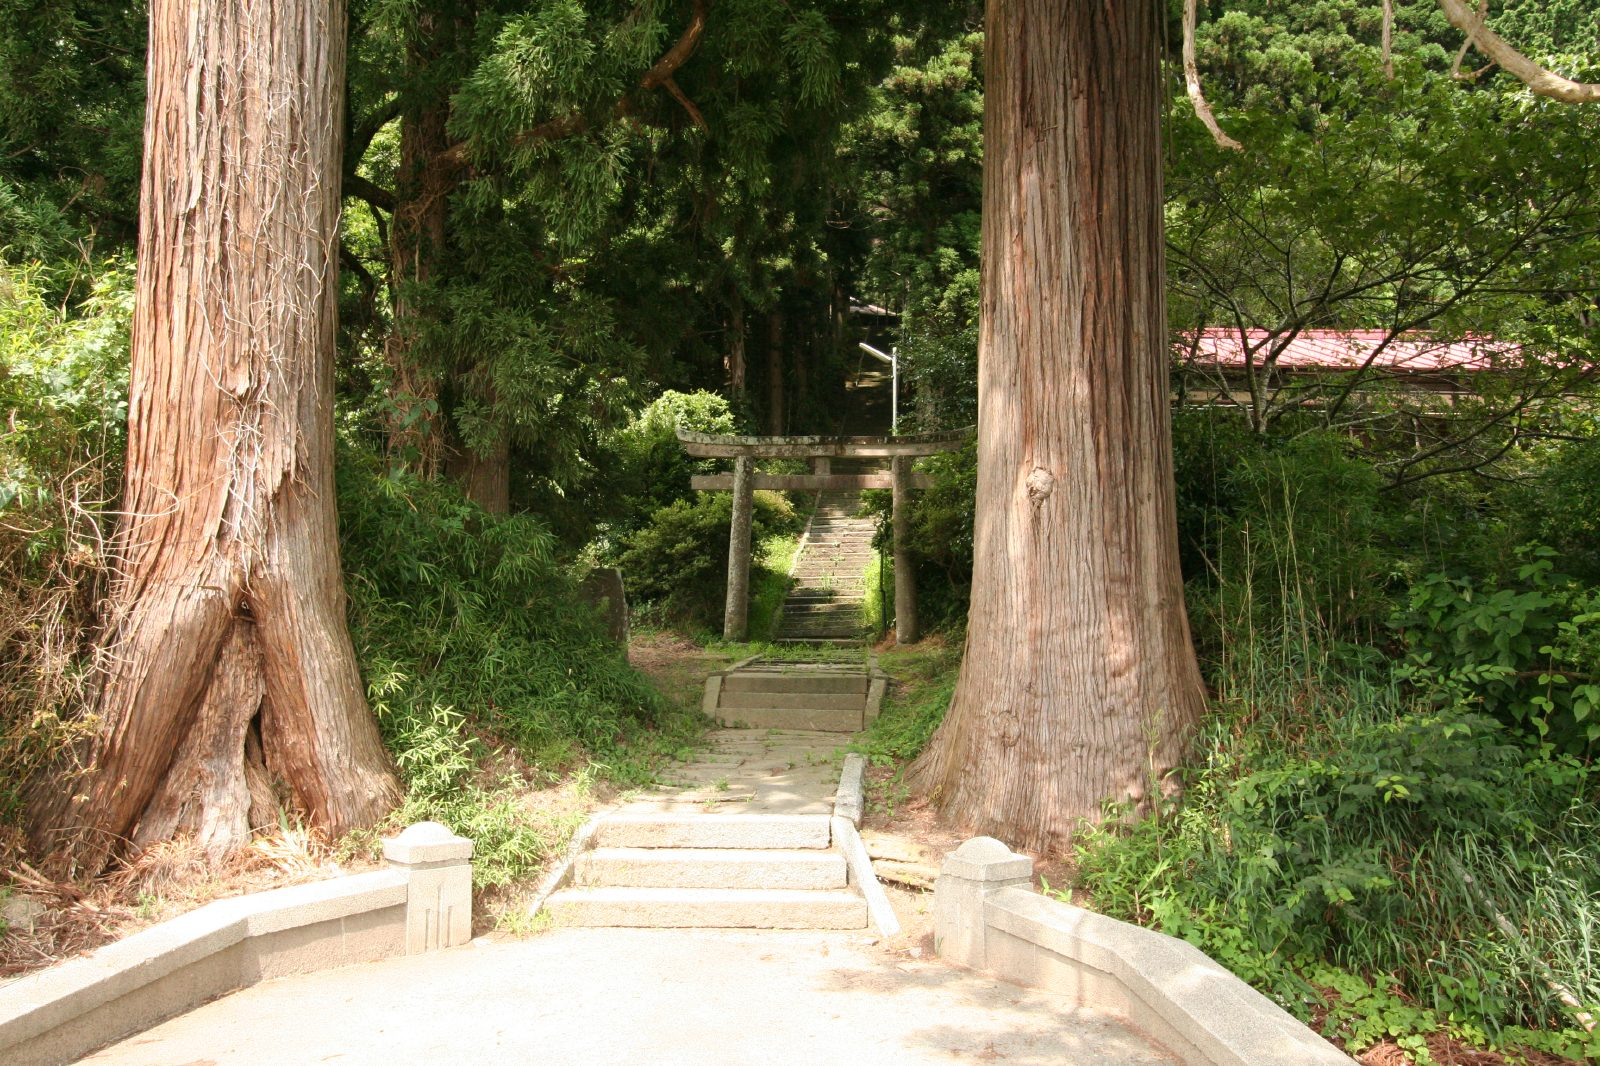 Daimon jinjya shrine